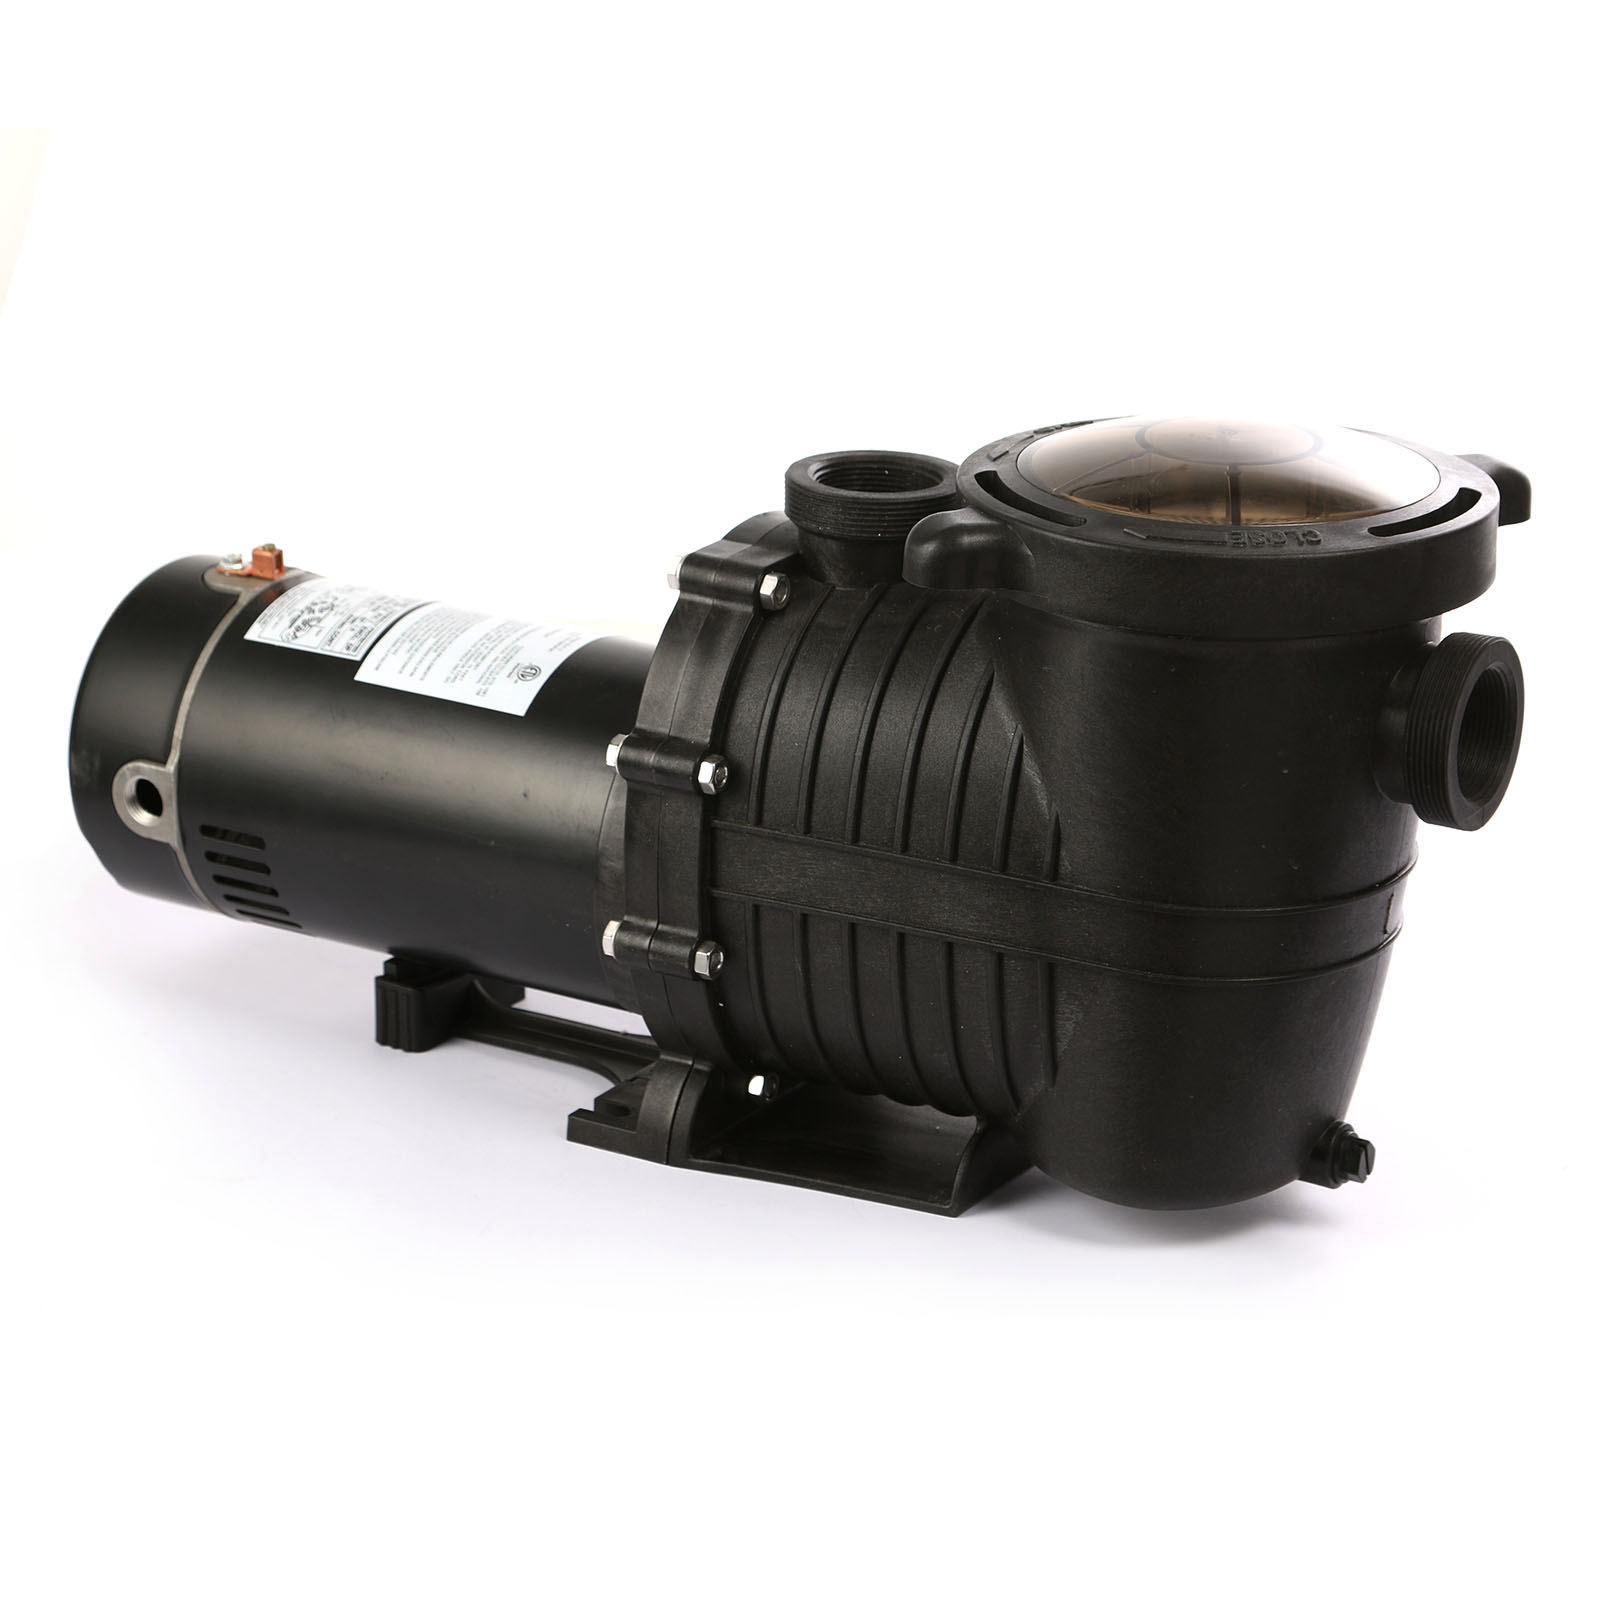 2hp swimming pool pump single speed spa filter water pump for Motor for pool pump